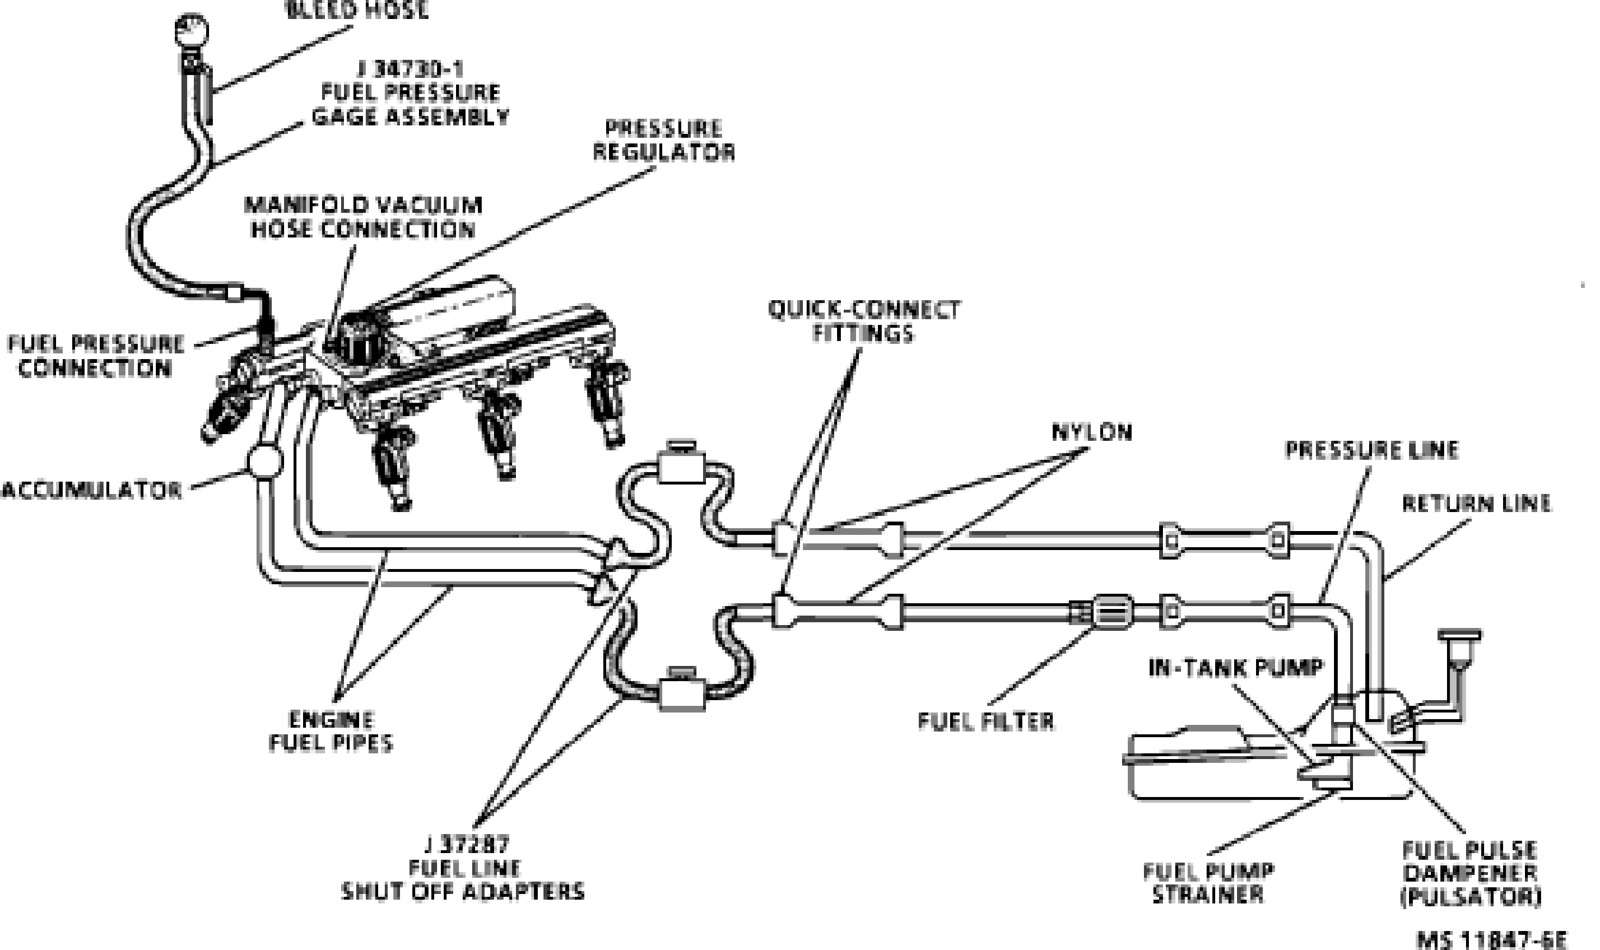 small resolution of 2005 chevy monte carlo engine diagram wiring library1997 chevy lumina engine diagram 2005 chevy monte carlo